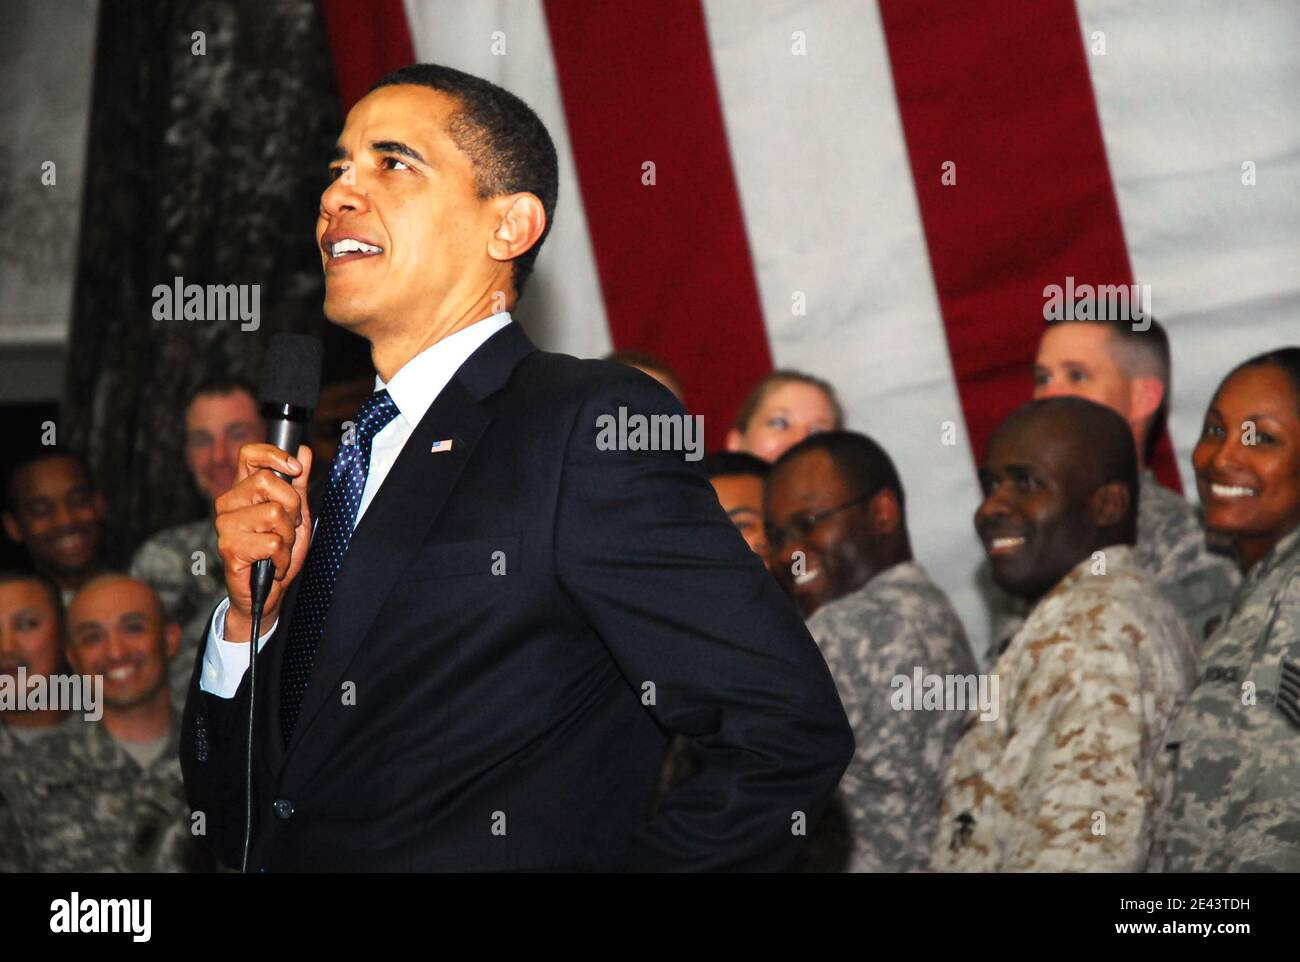 US President Barack Obama visits Al Faw Palace on Camp Victory, near Baghdad, Iraq on April 7, 2009, during his first trip to the country as commander in chief, declaring it time for U.S. troops to start leaving and Iraqis to take complete charge of their country. Photo by Lee Craker/DoD via ABACAPRESS.COM Stock Photo